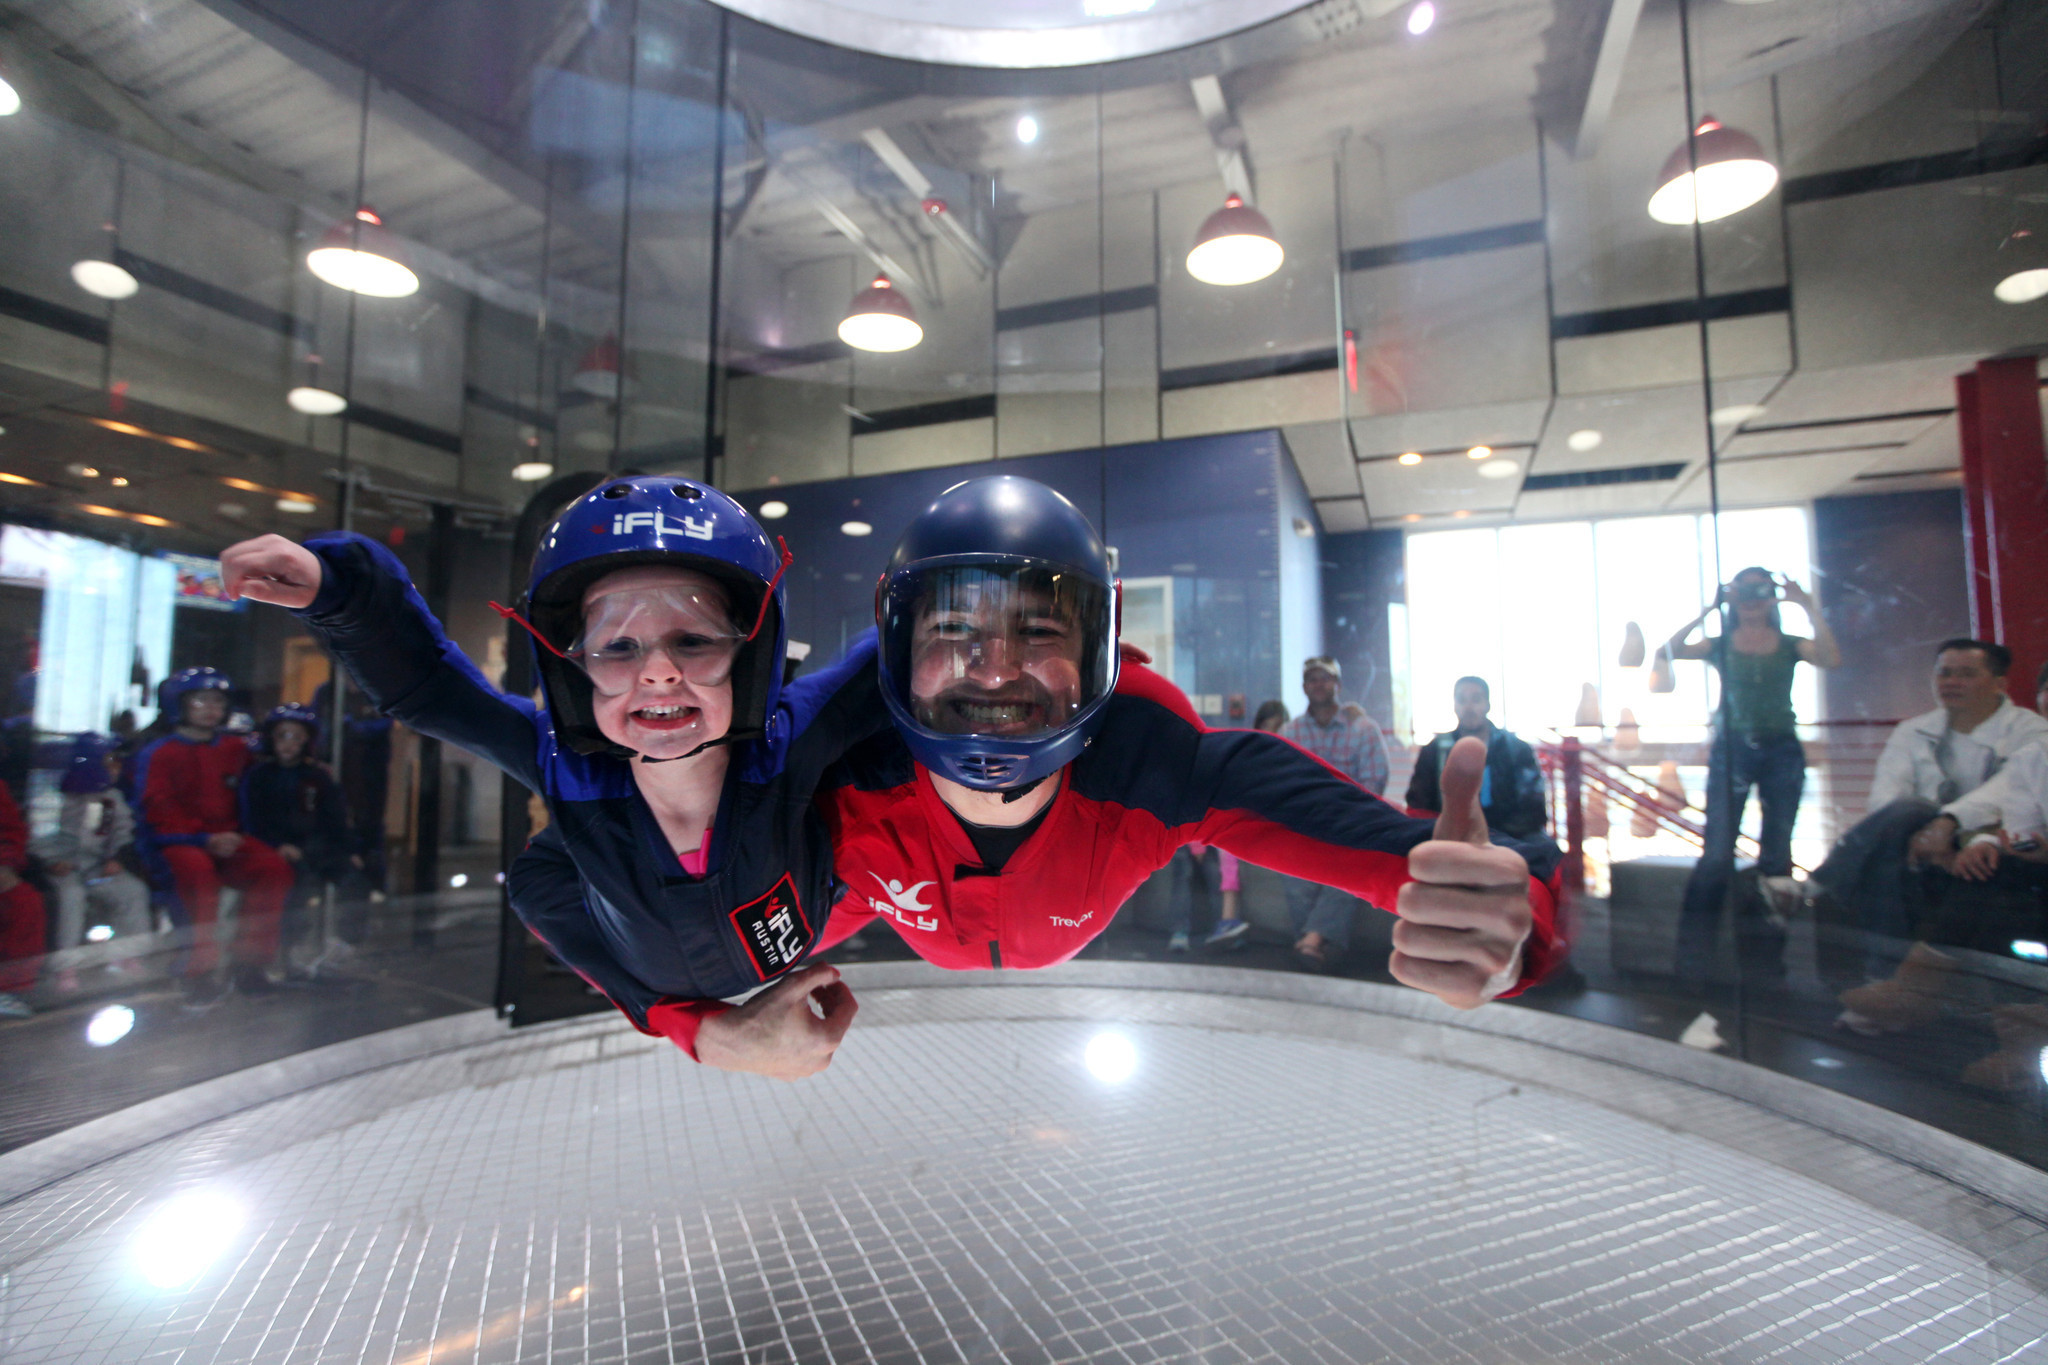 Skydive In The Safety Of A Wind Tunnel At Ifly Chicago